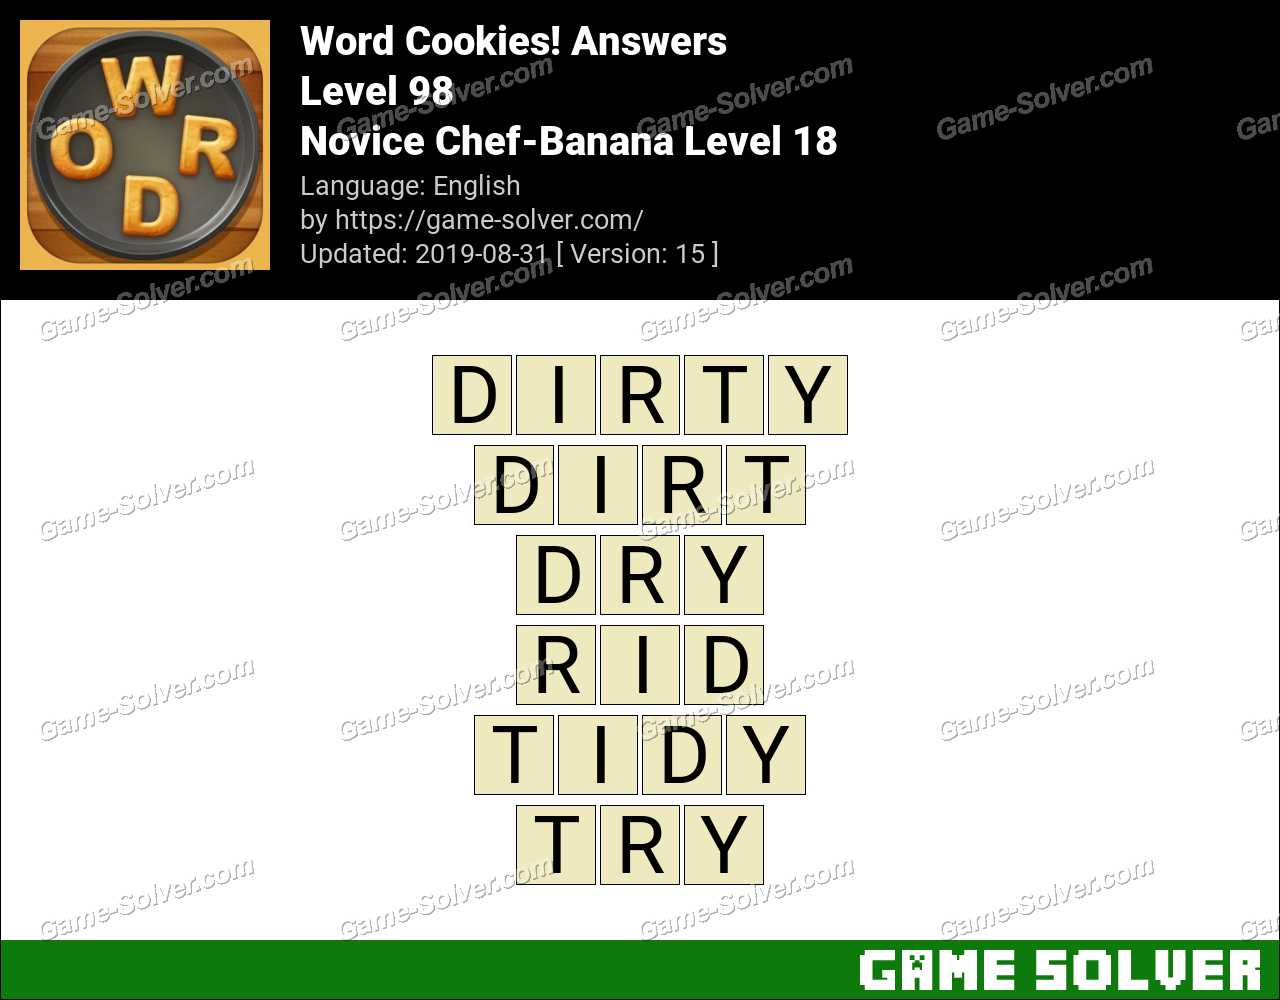 Word Cookies Novice Chef-Banana Level 18 Answers